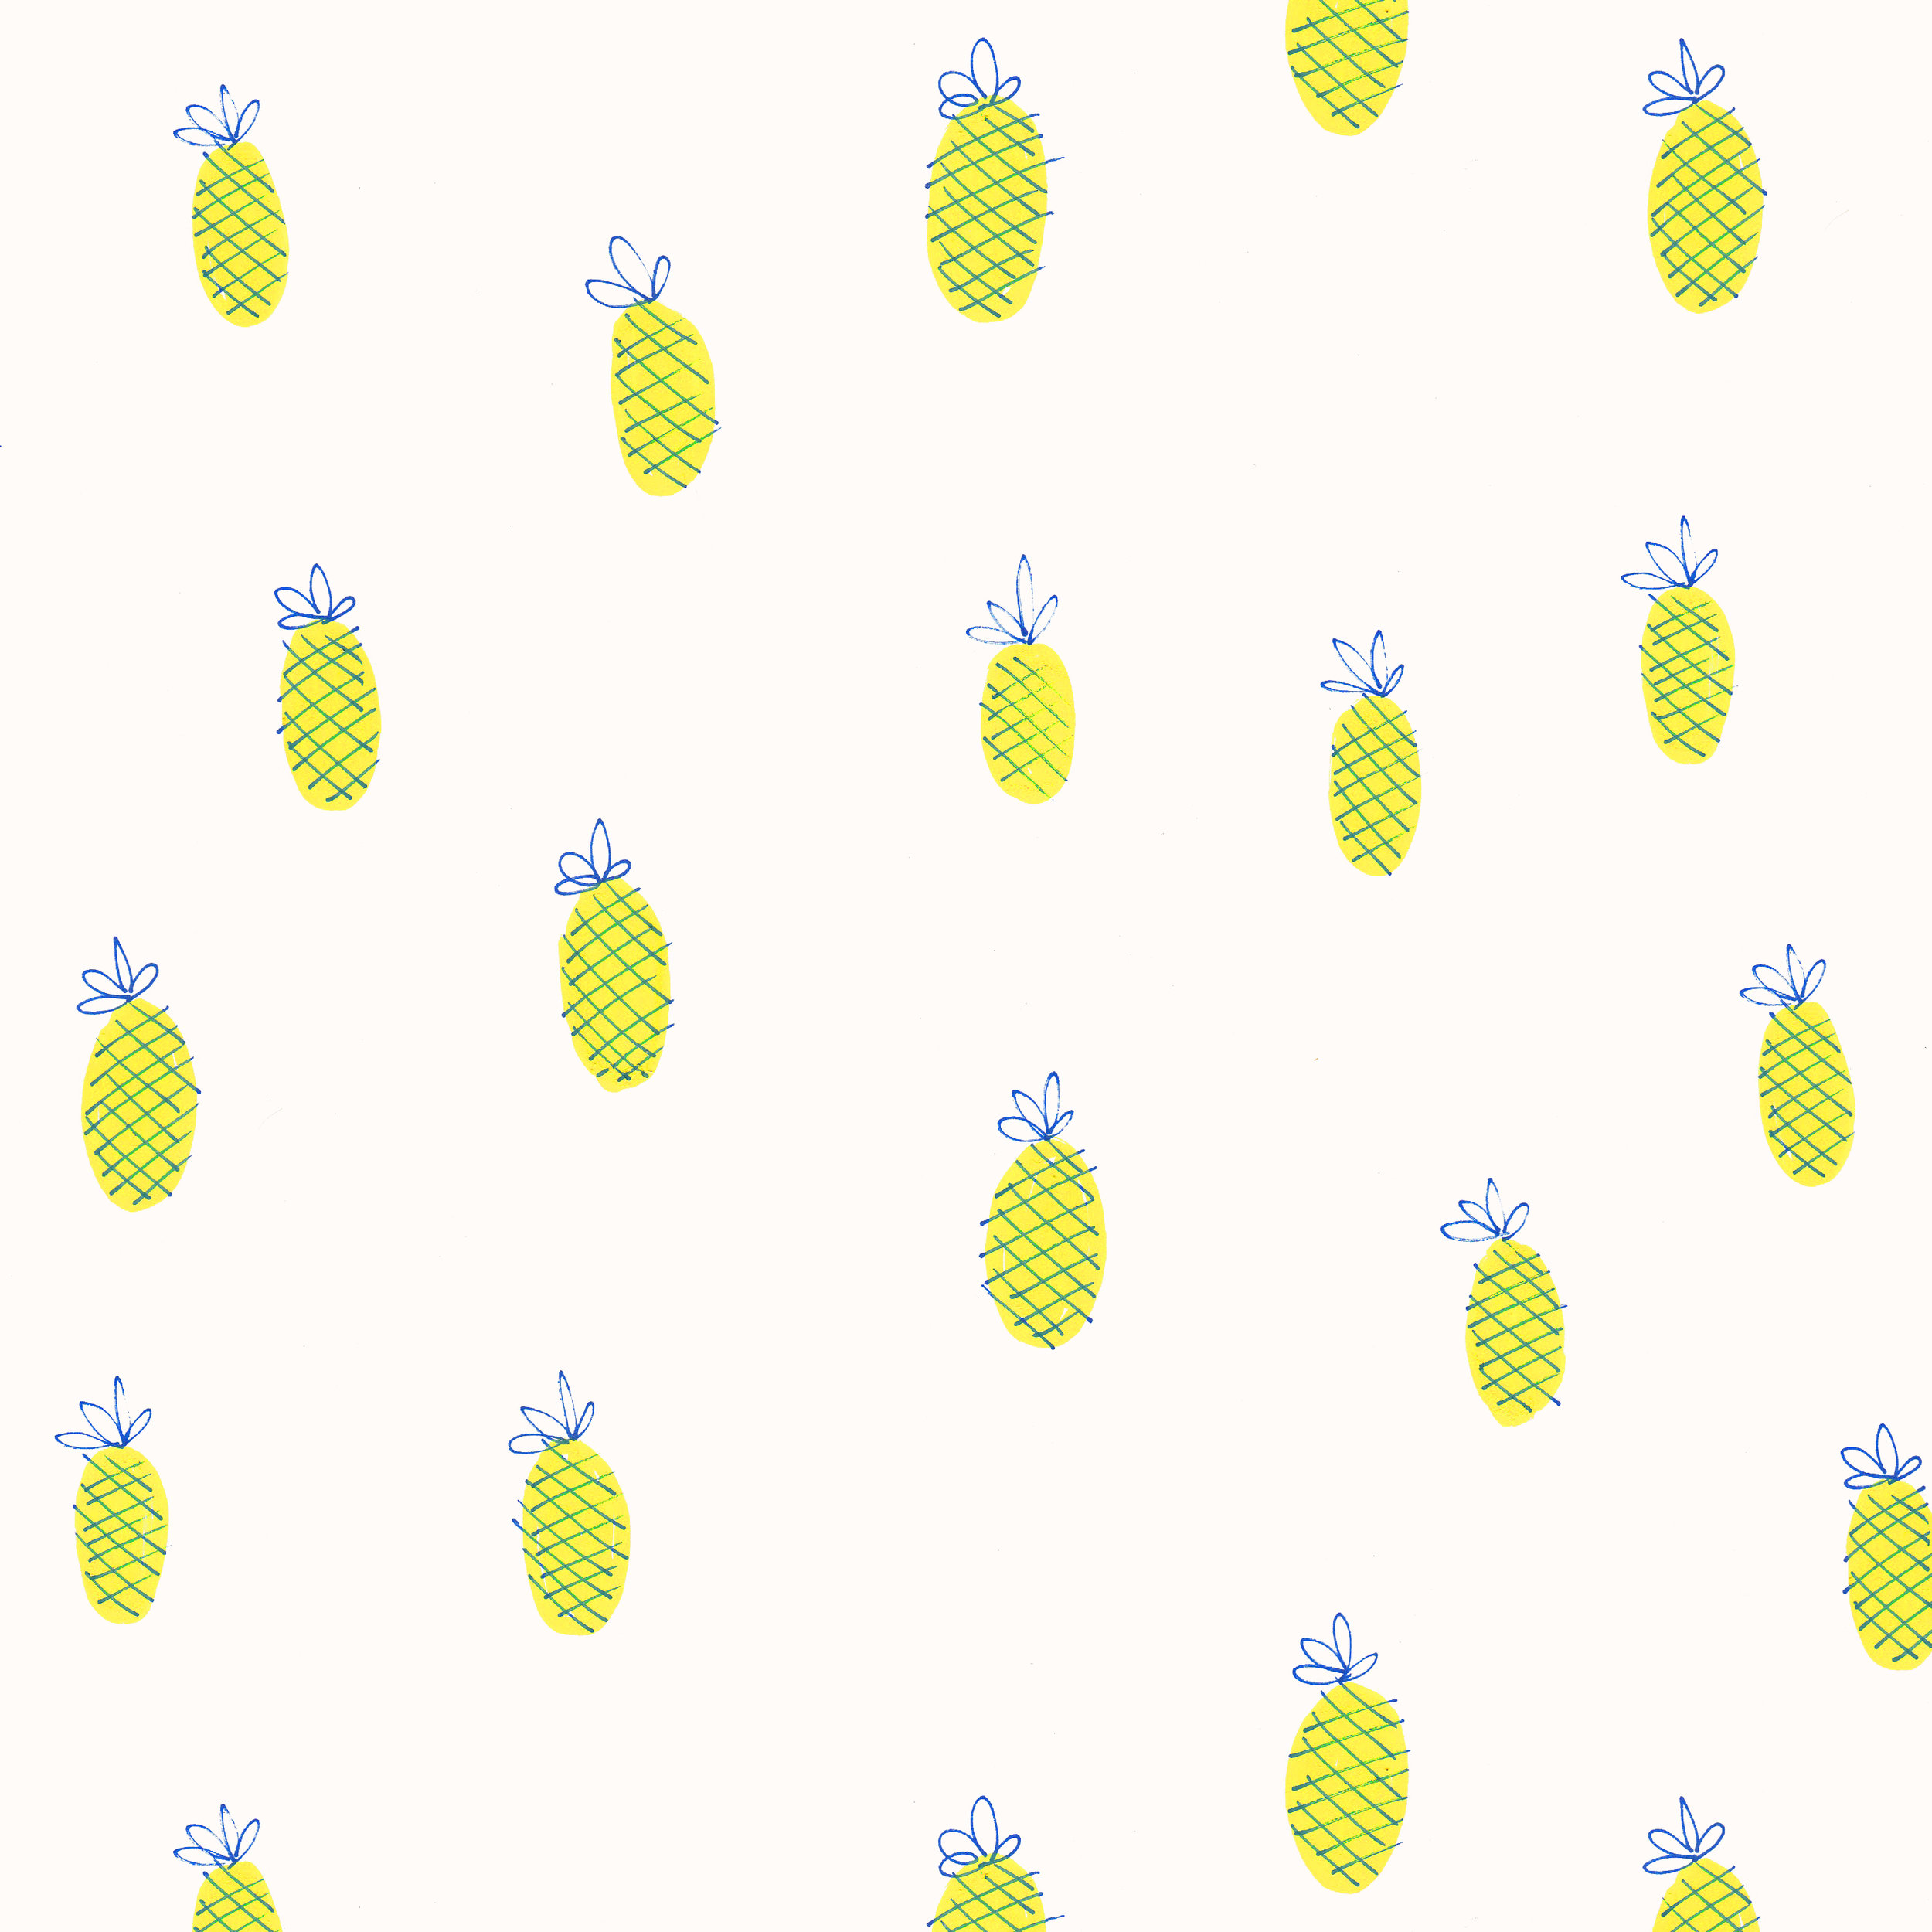 pineapple doodles.jpg